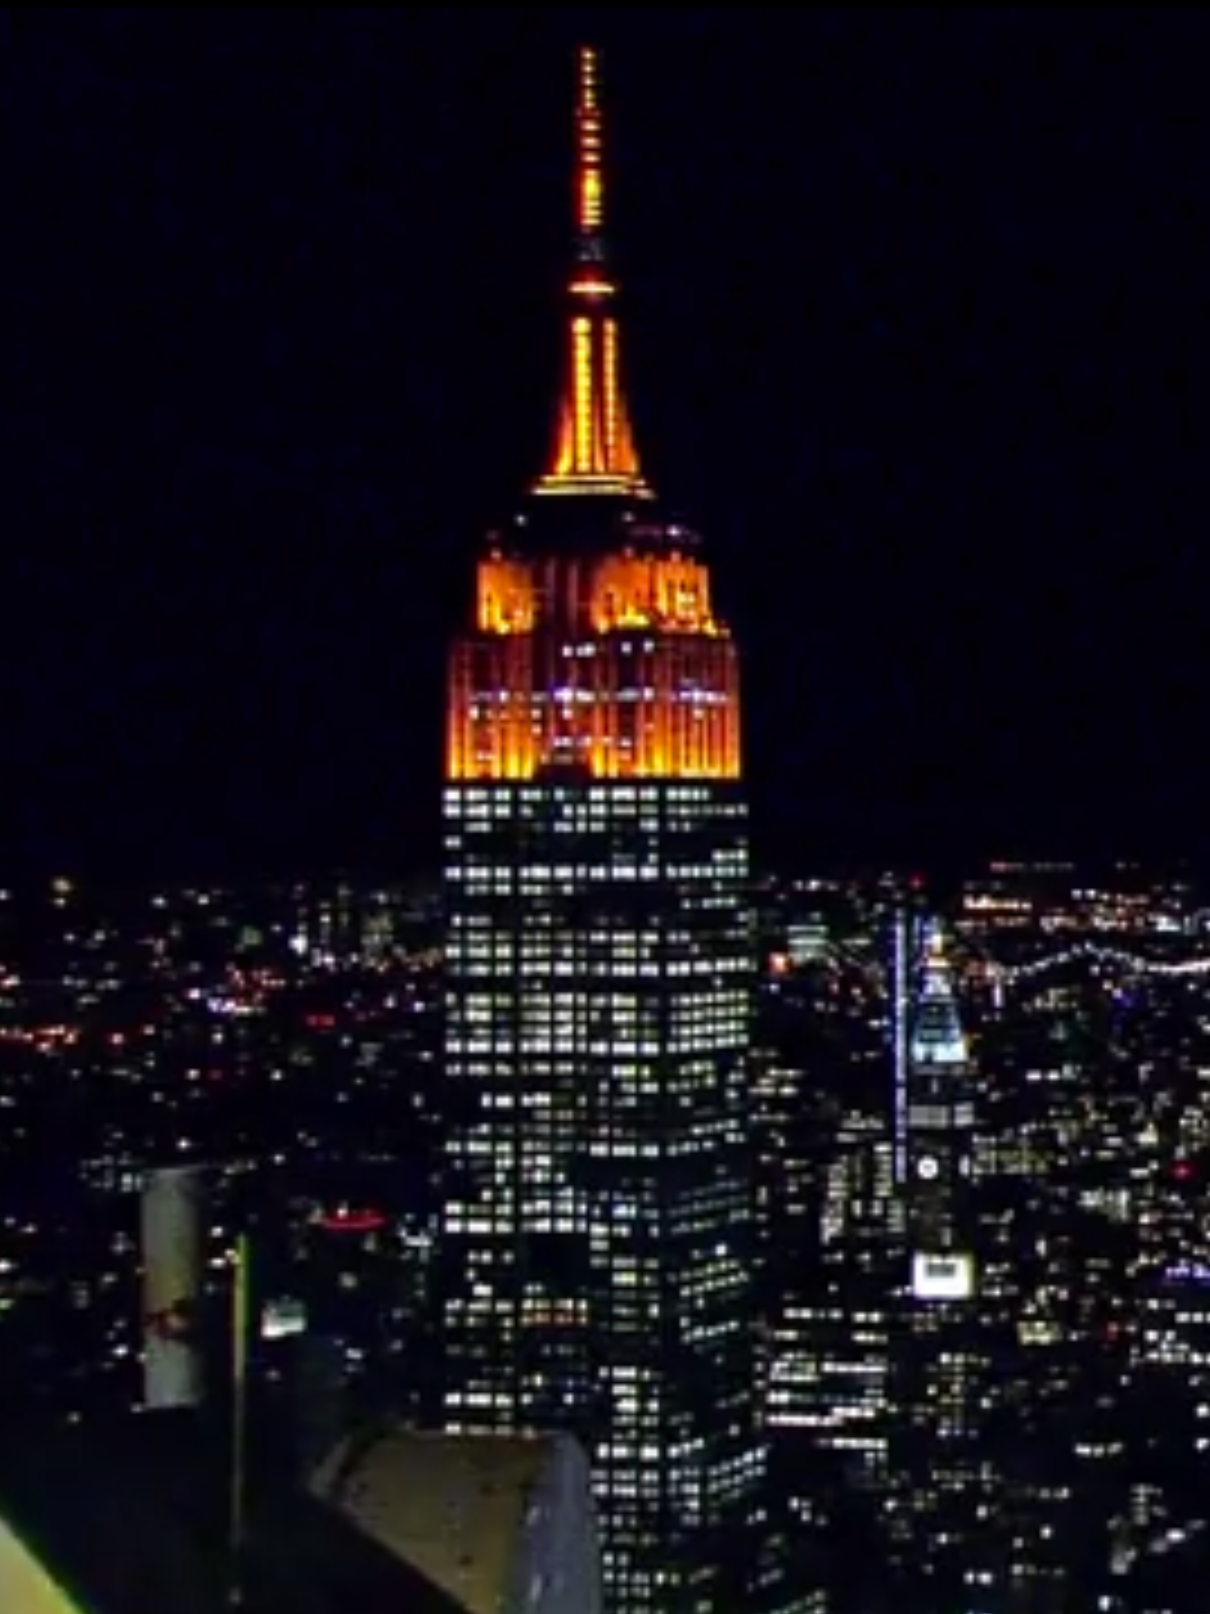 The Empire State Building is orange for Halloween.